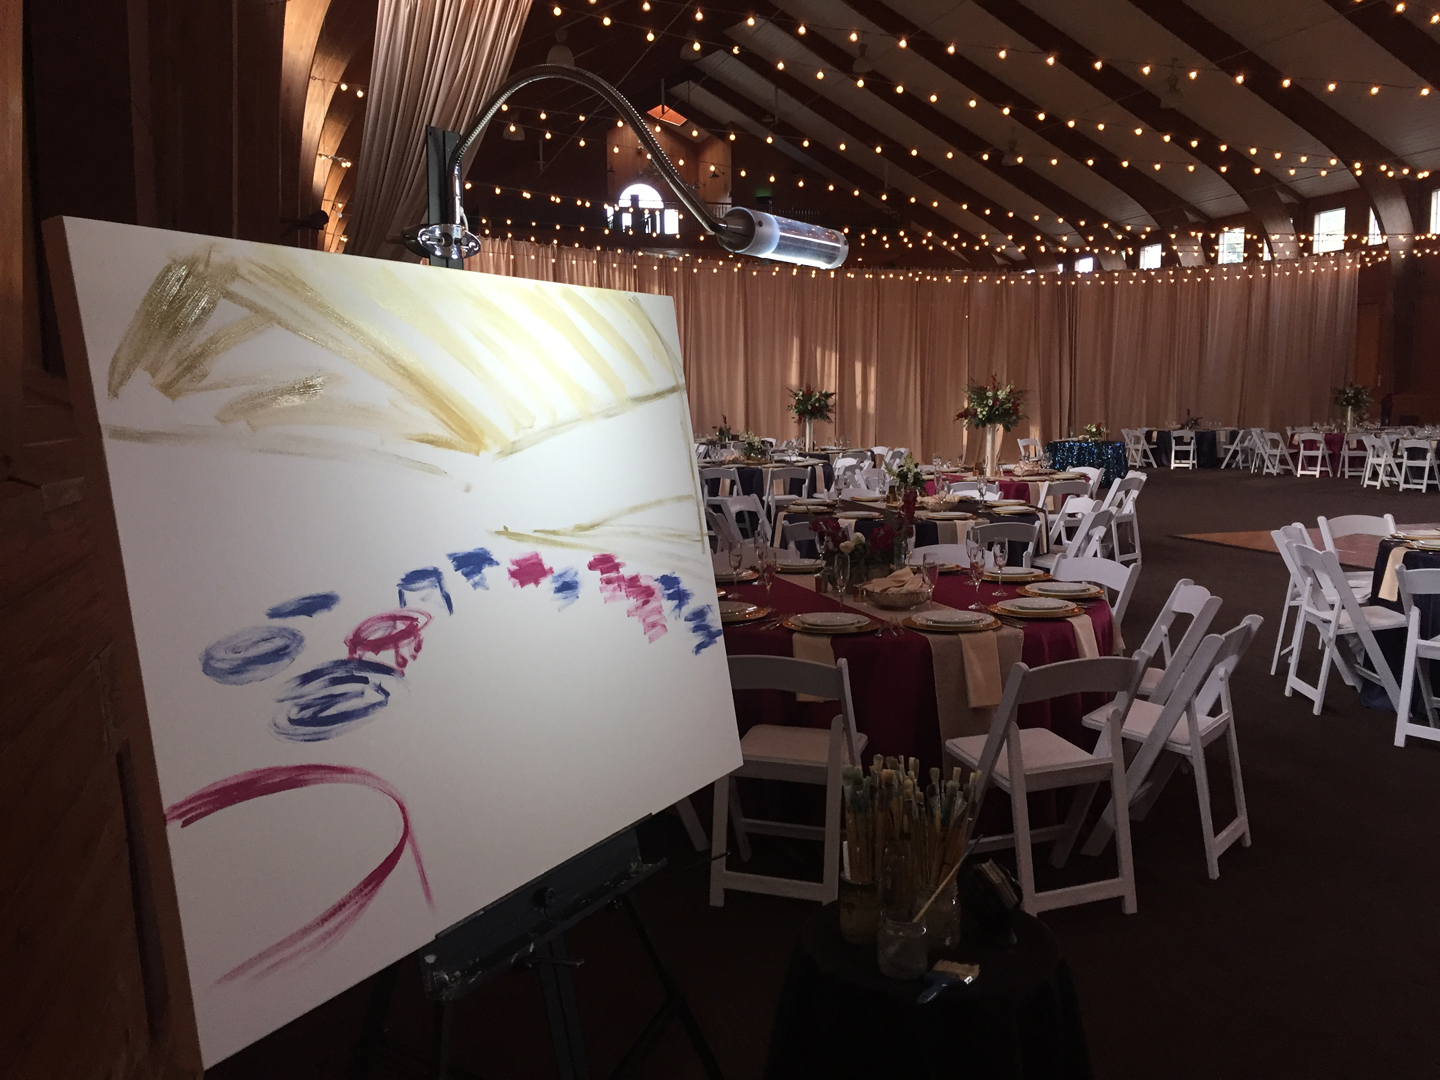 First brush strokes on the canvas, figuring out the composition just before guests arrive ...